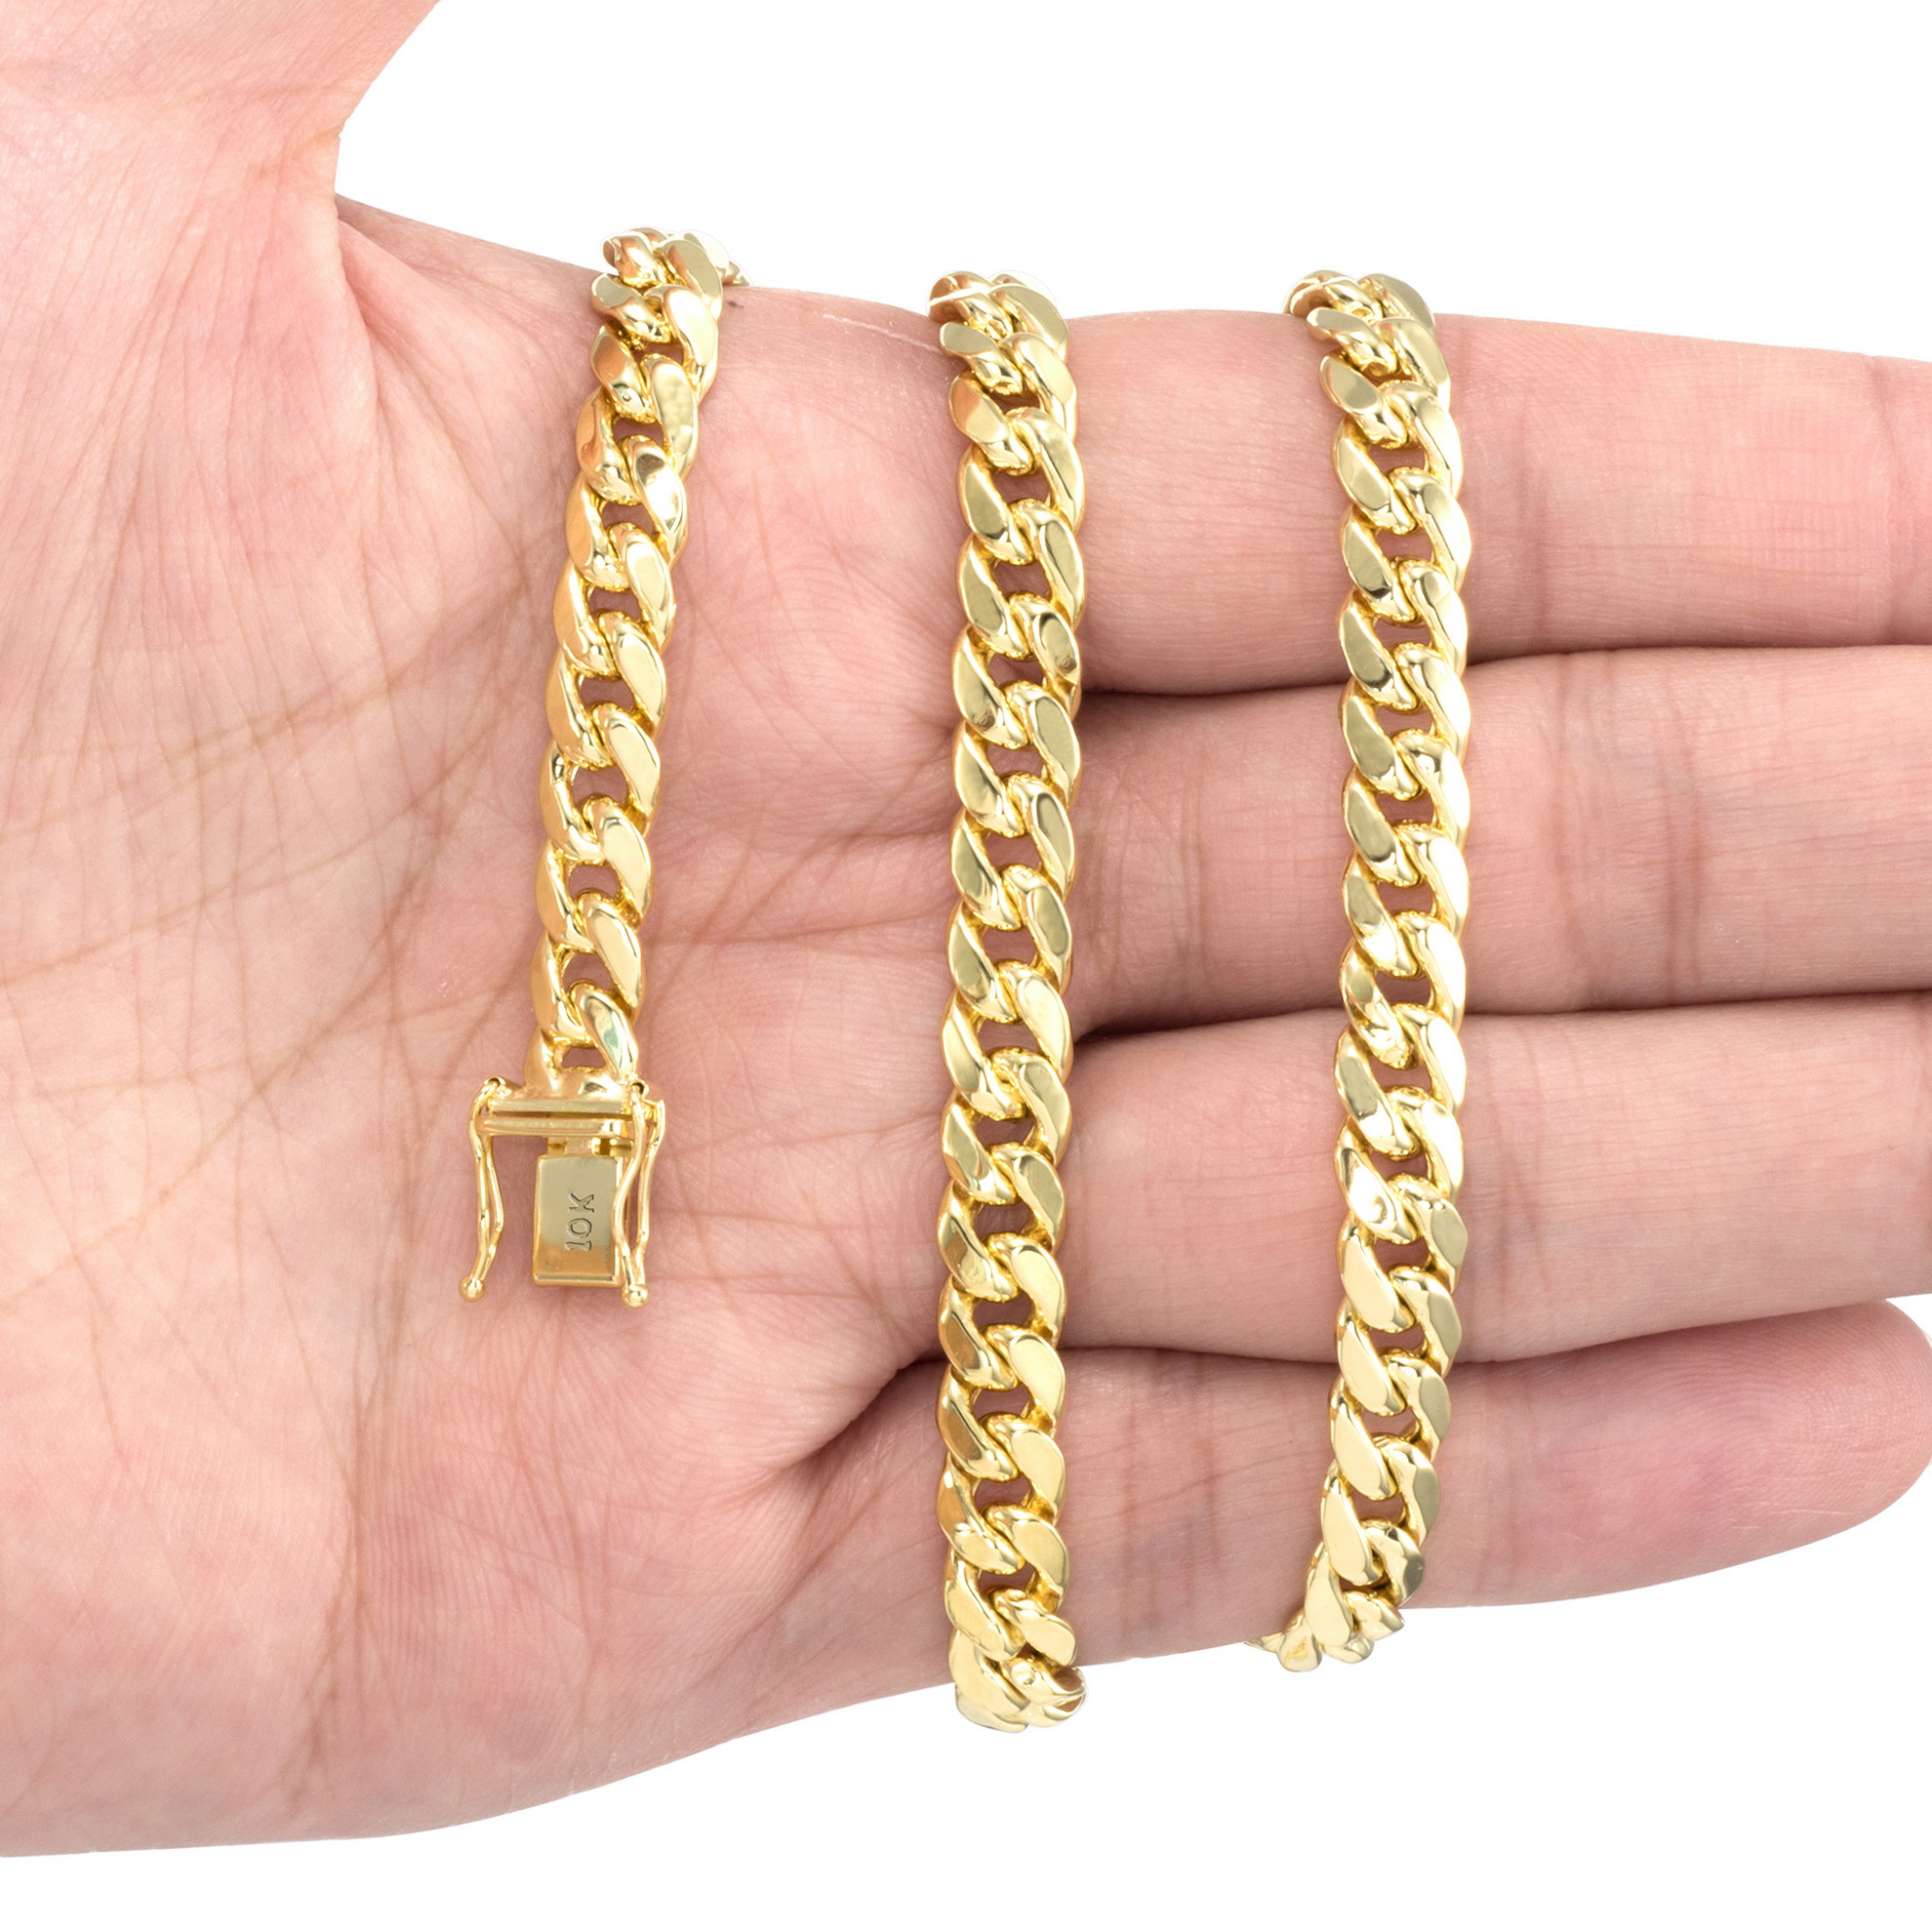 10K-Yellow-Gold-3-5mm-17mm-Real-Miami-Cuban-Link-Necklace-Chain-Bracelet-7-034-30-034 thumbnail 28